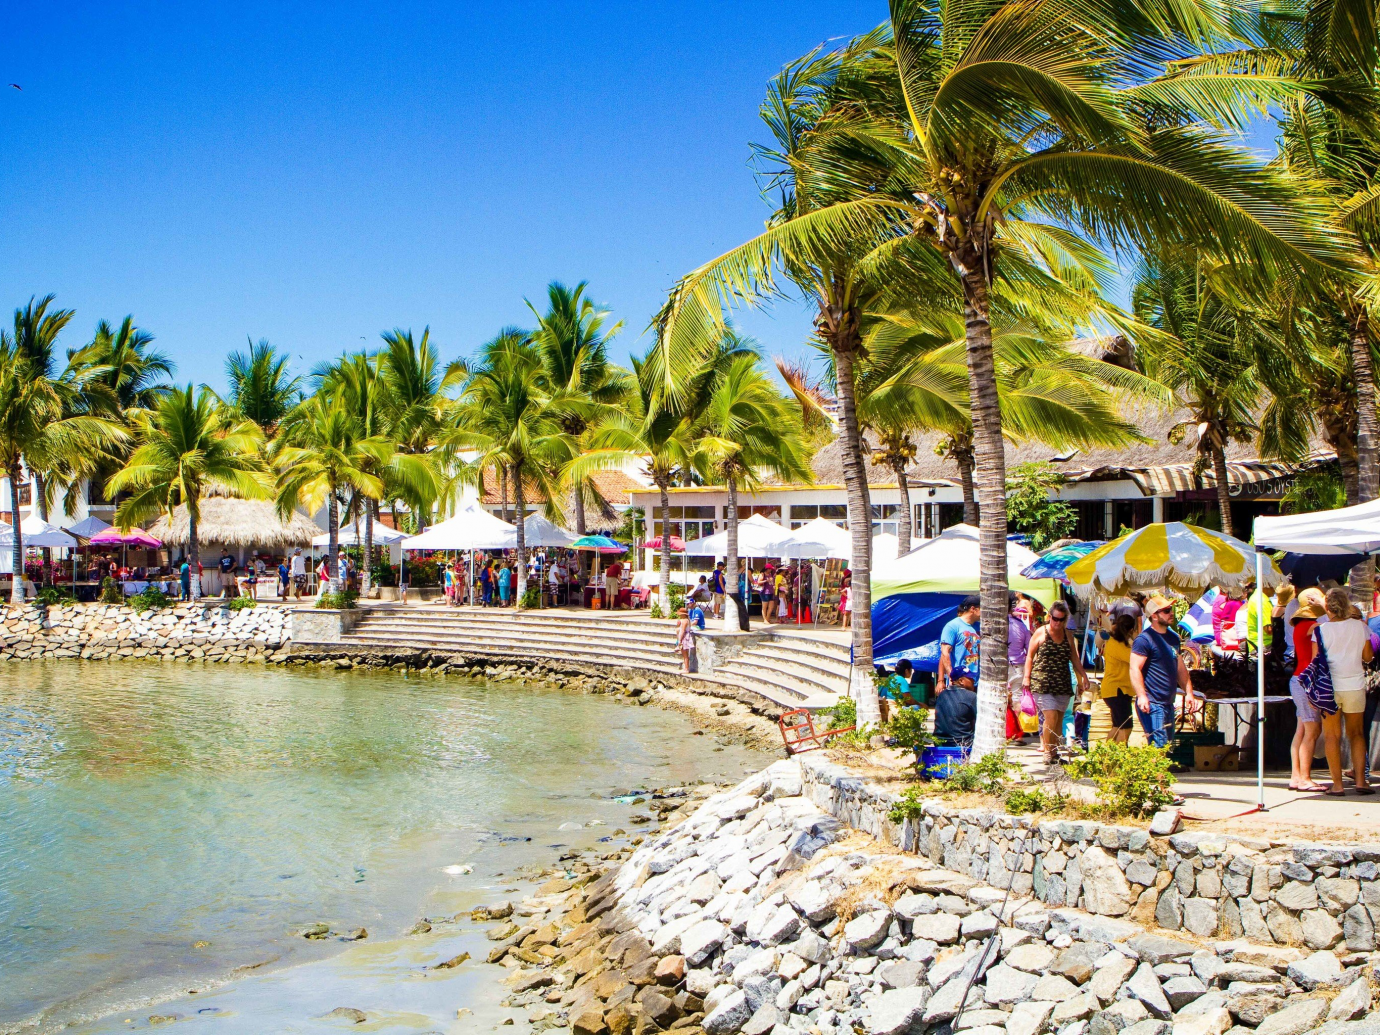 Lively area with tents and set up shops in Puerto Vallarta